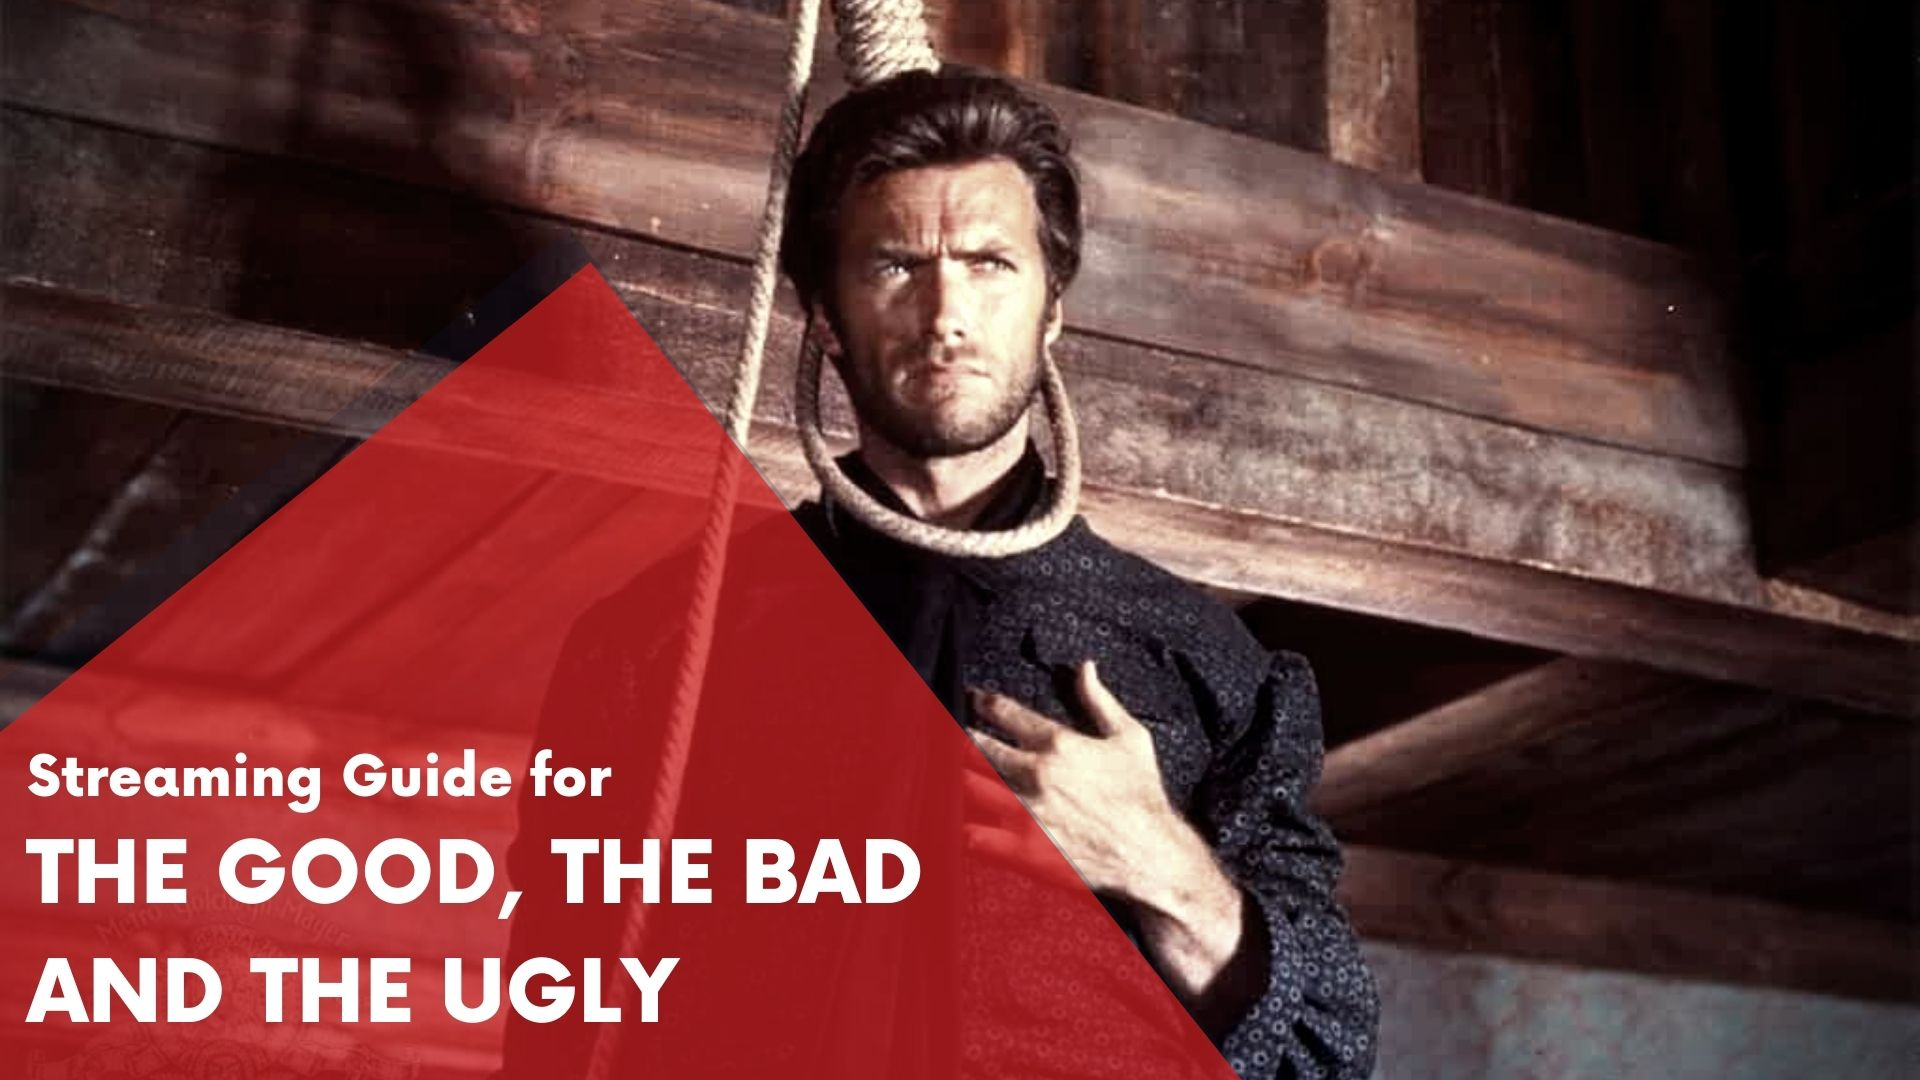 Answering if The Good the Bad and the Uglyc an be watched online on Hulu